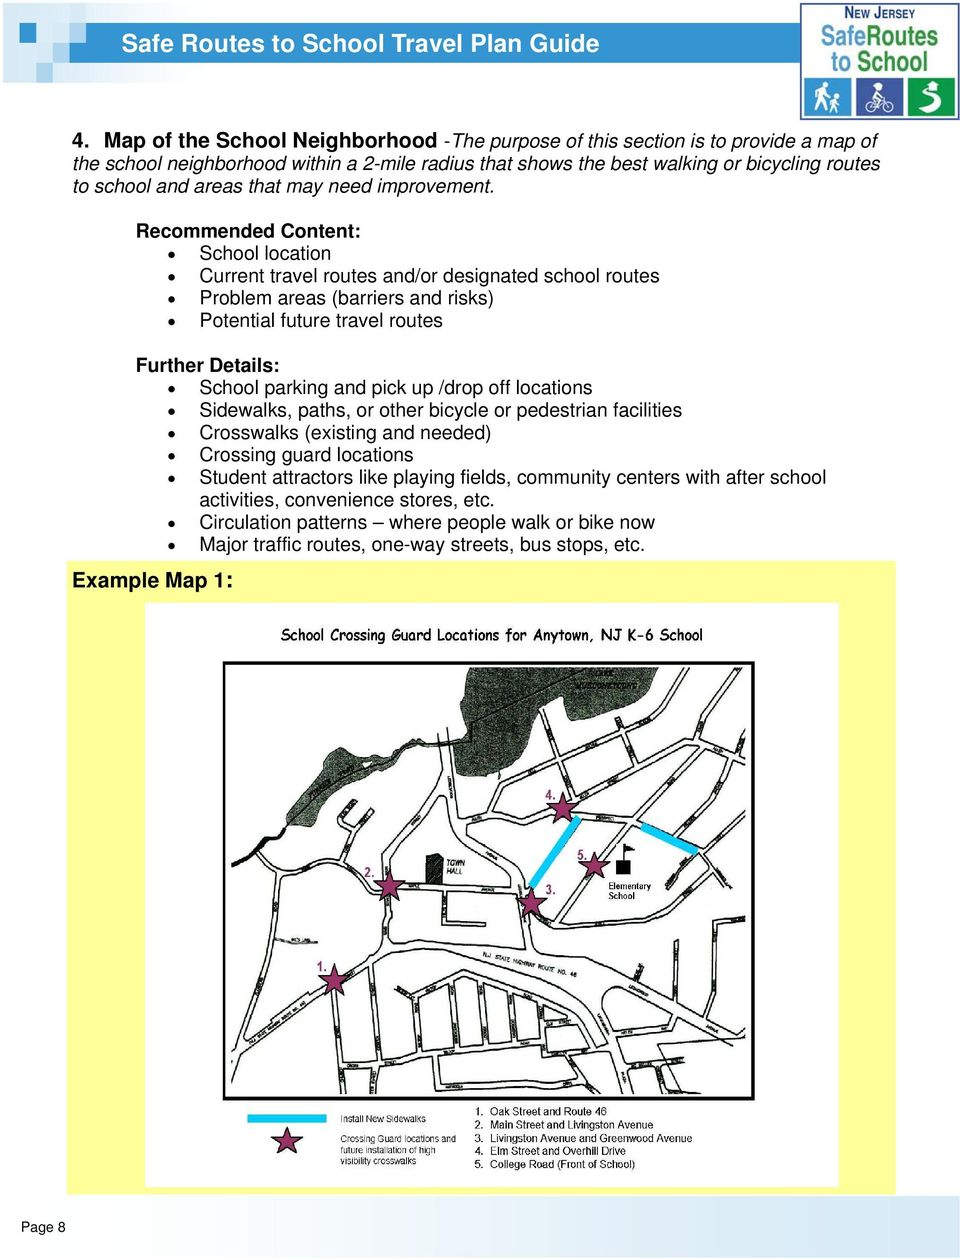 Recommended Content: School location Current travel routes and/or designated school routes Problem areas (barriers and risks) Potential future travel routes Further Details: School parking and pick